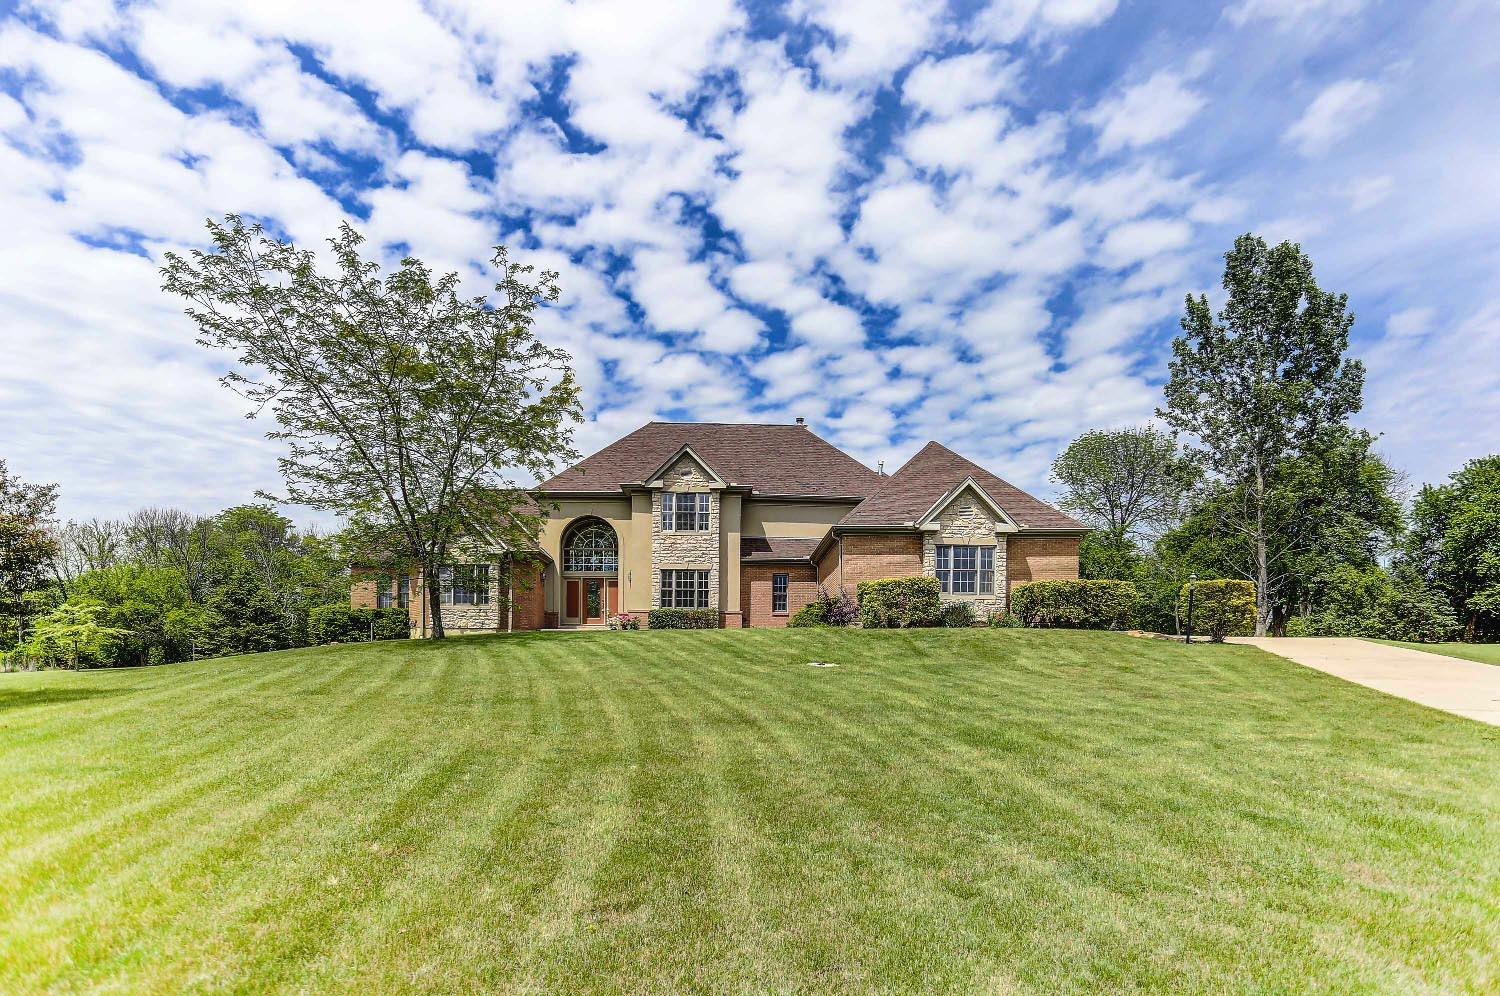 2820 Ashton Dr Turtle Creek Twp., OH